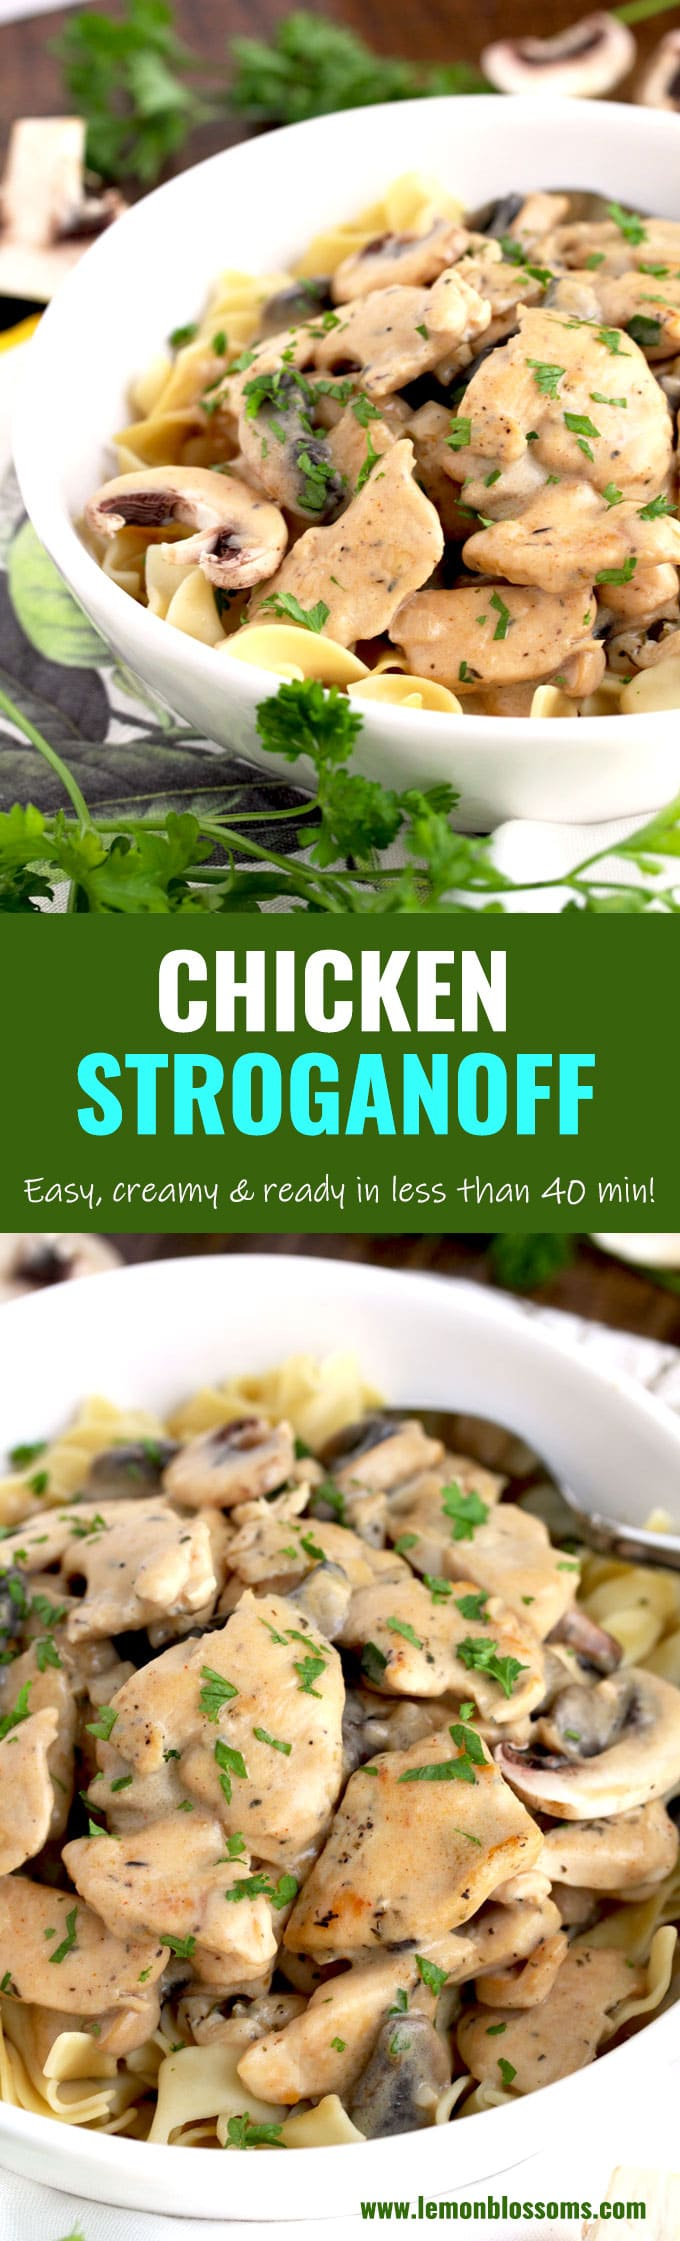 Chicken Stroganoff is made with tender chicken and mushrooms cooked in a creamy and decadent sauce. This Stroganoff recipe takes about 40 minutes to make and it's the perfect comfort food dish for weeknight meals! #easy #recipe #stroganoff #best #chicken